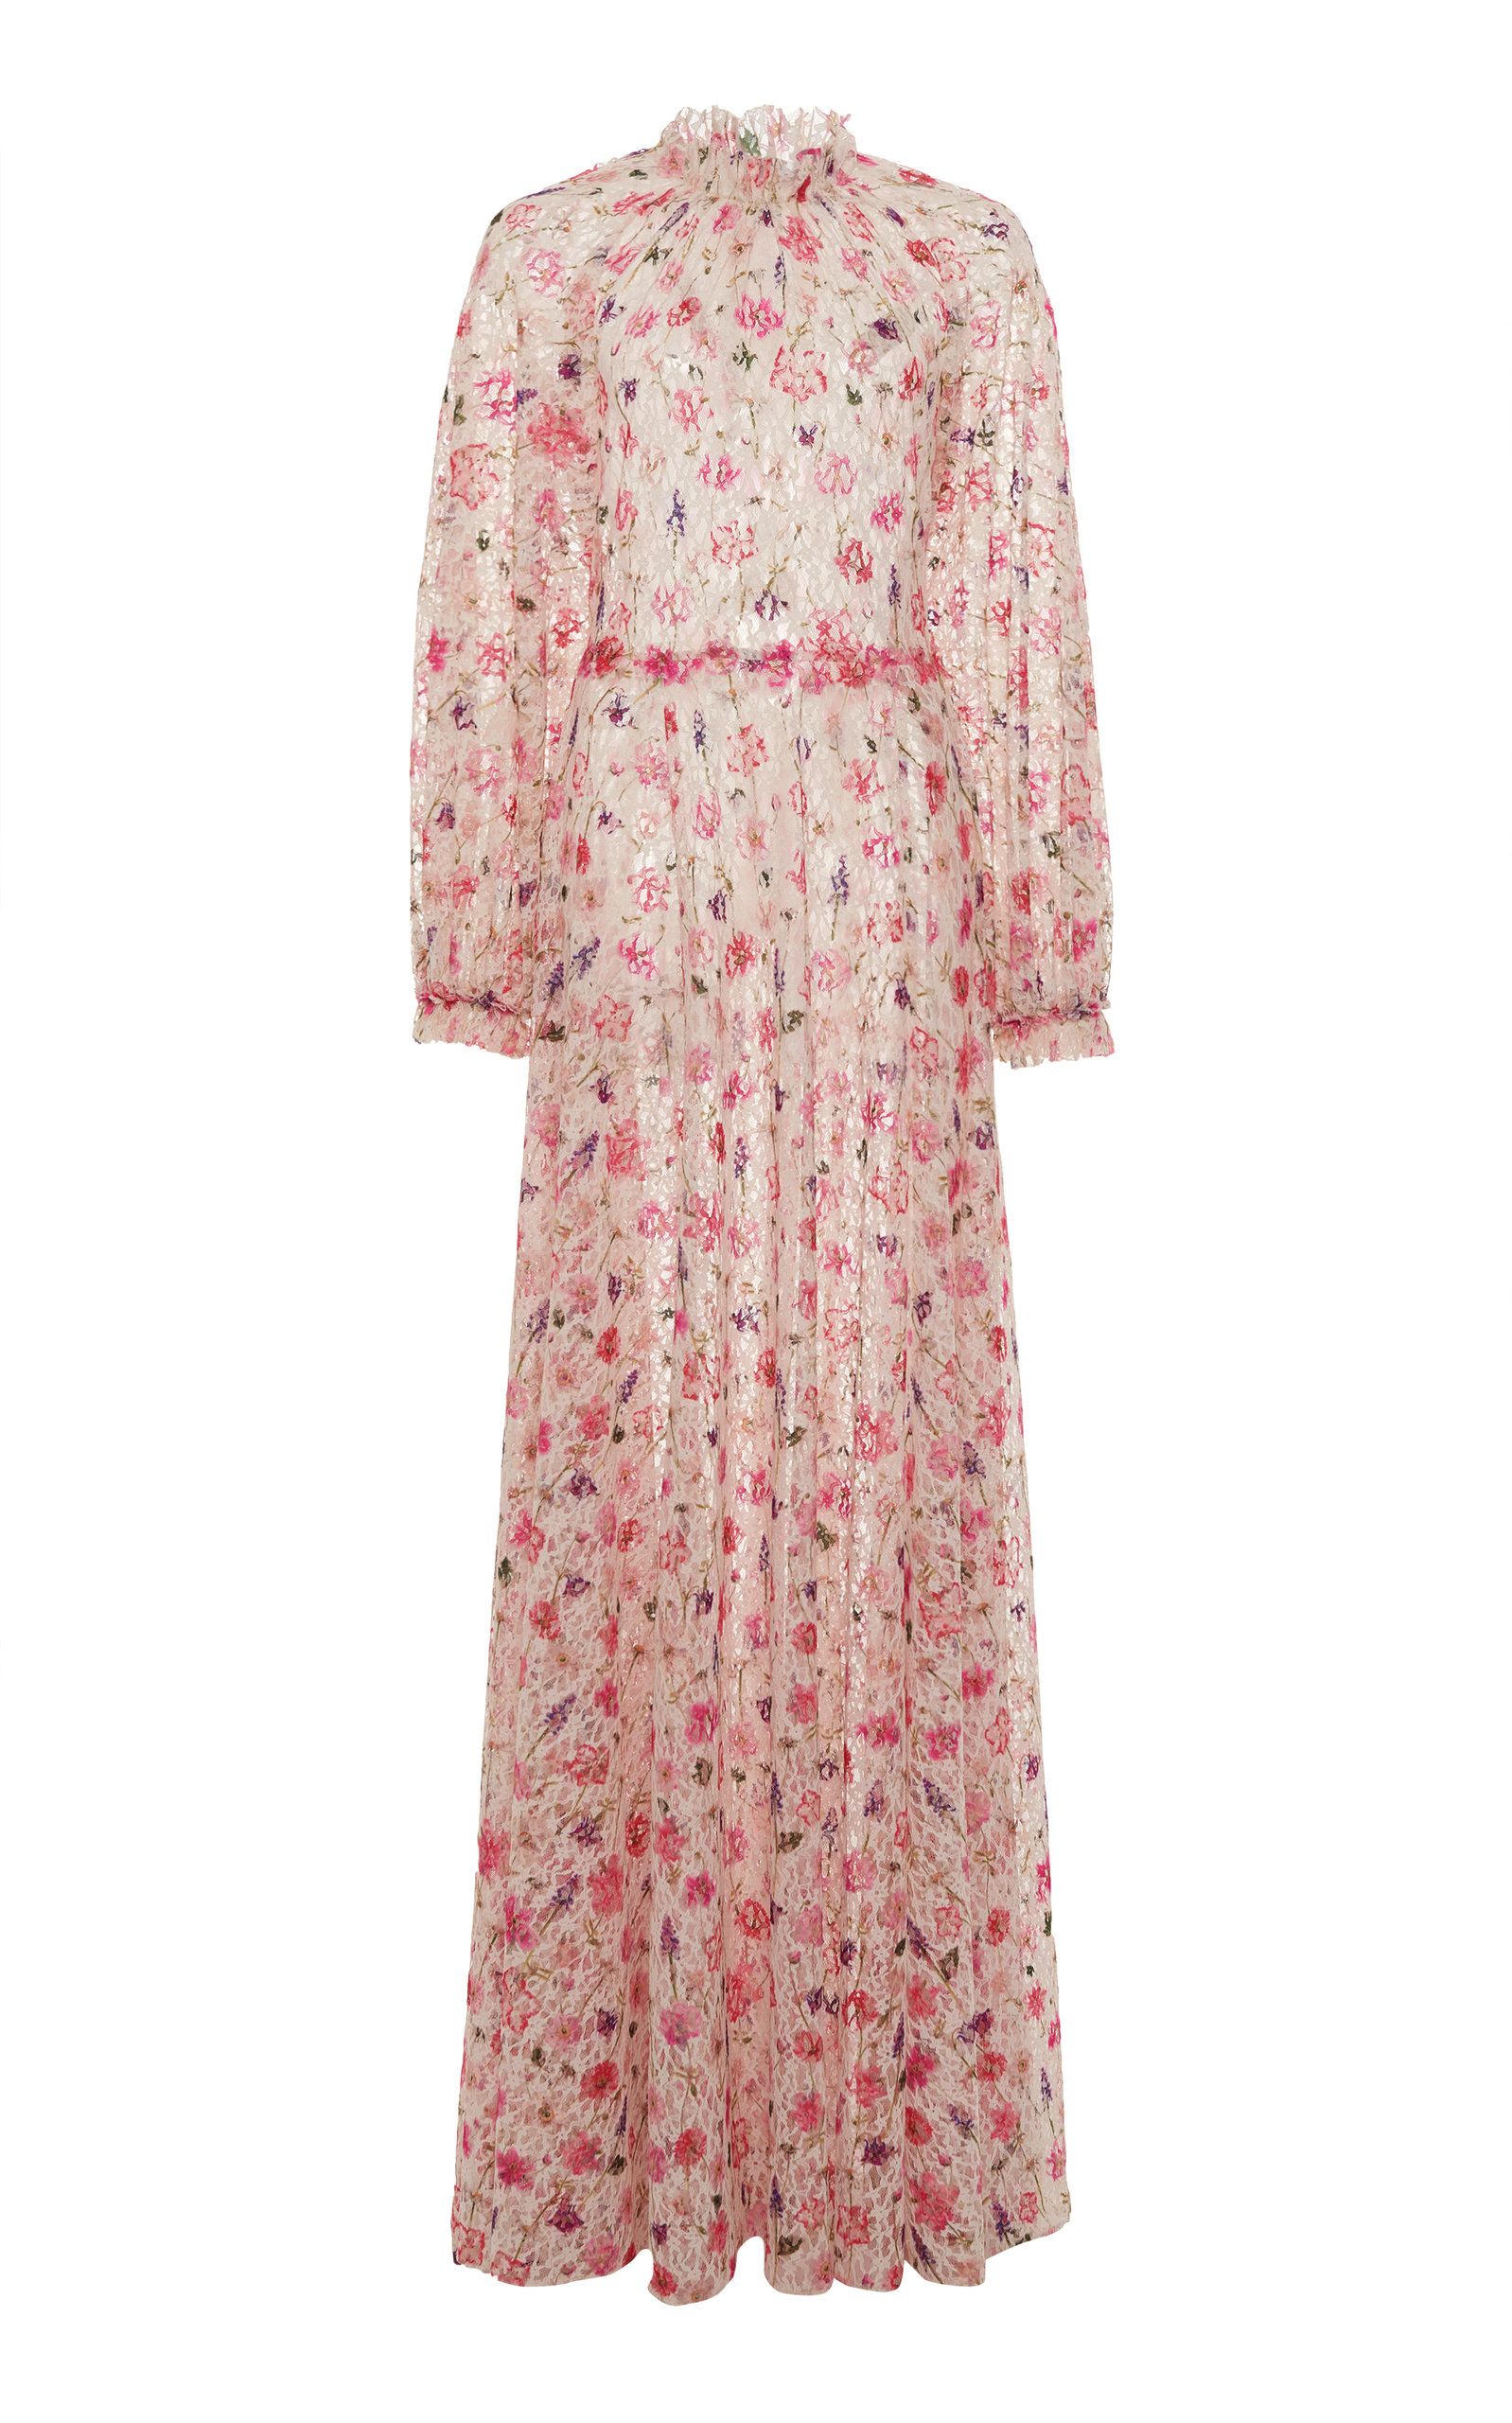 Buy Luisa Beccaria Floral-Print Georgette Maxi Dress online, shop Luisa Beccaria at the best price